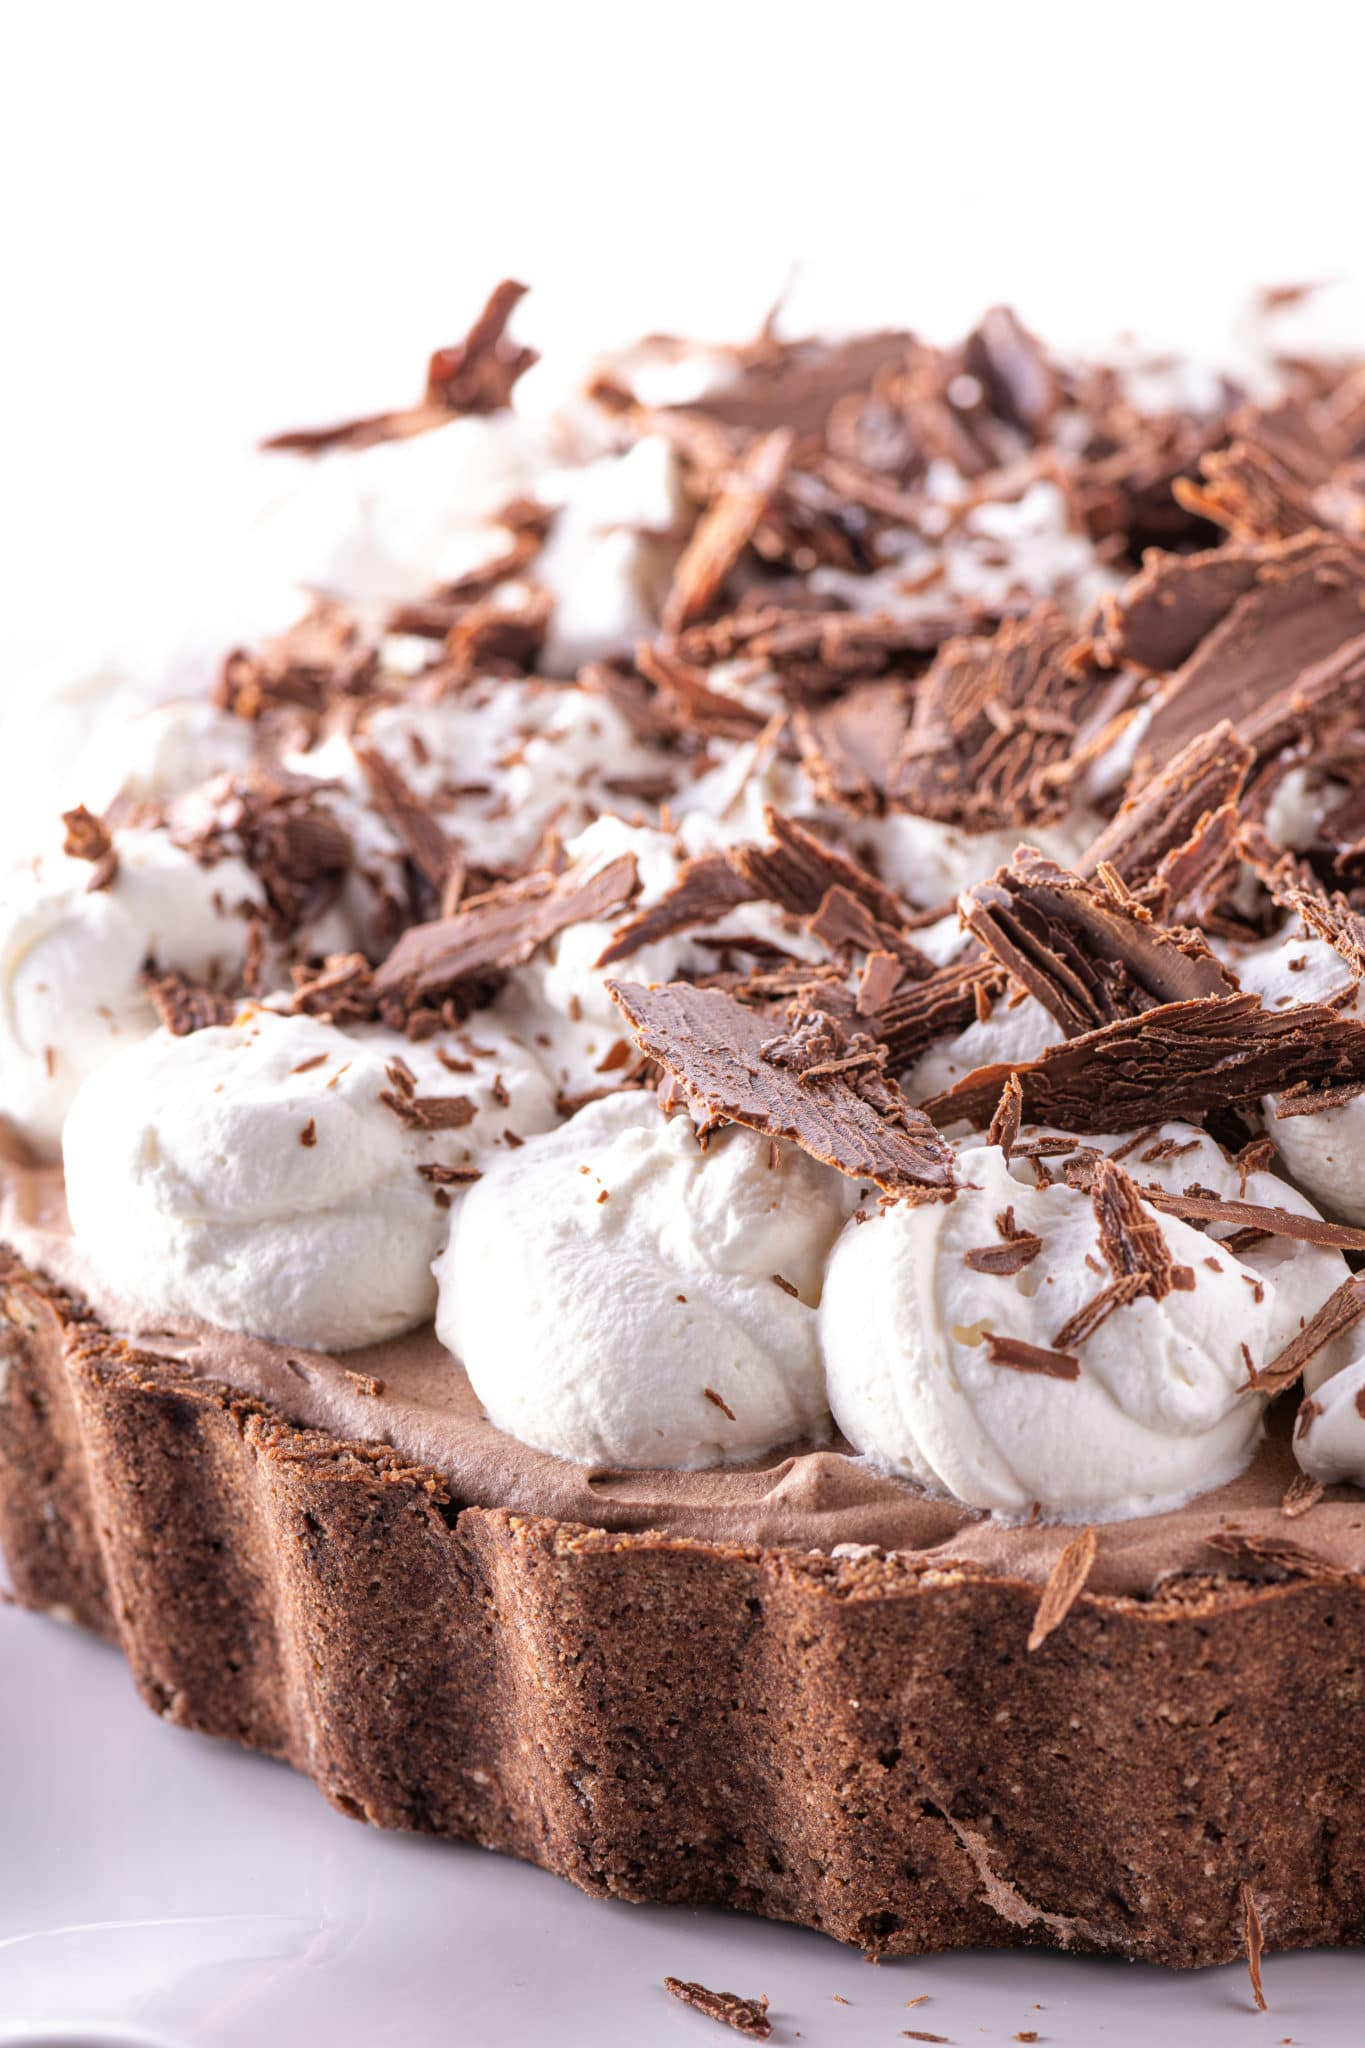 A close up image of a chocolate pie crust filled with chocolate filling and topped with whipped cream and chocolate shavings.